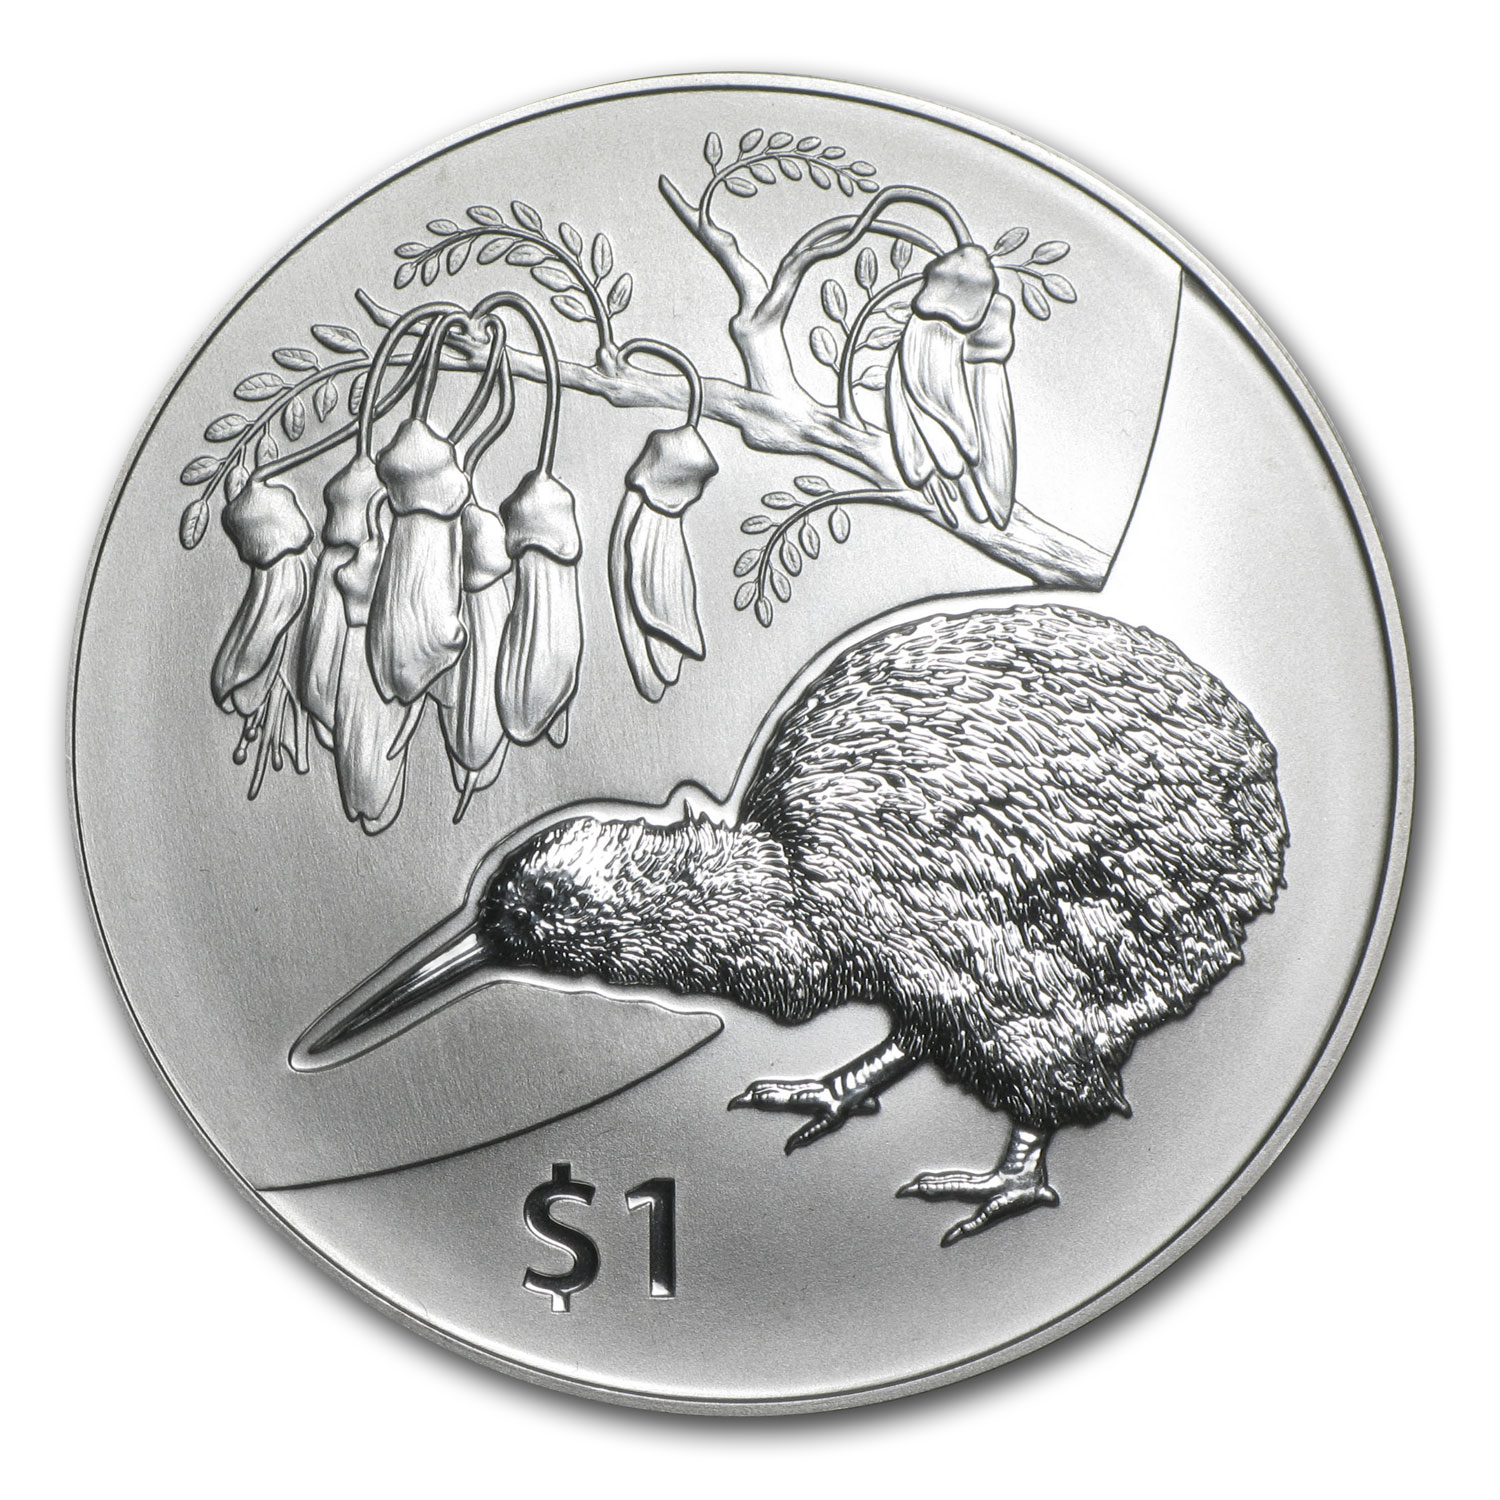 2012 New Zealand 1 oz Silver Treasures $1 Kiwi-Kowhai BU